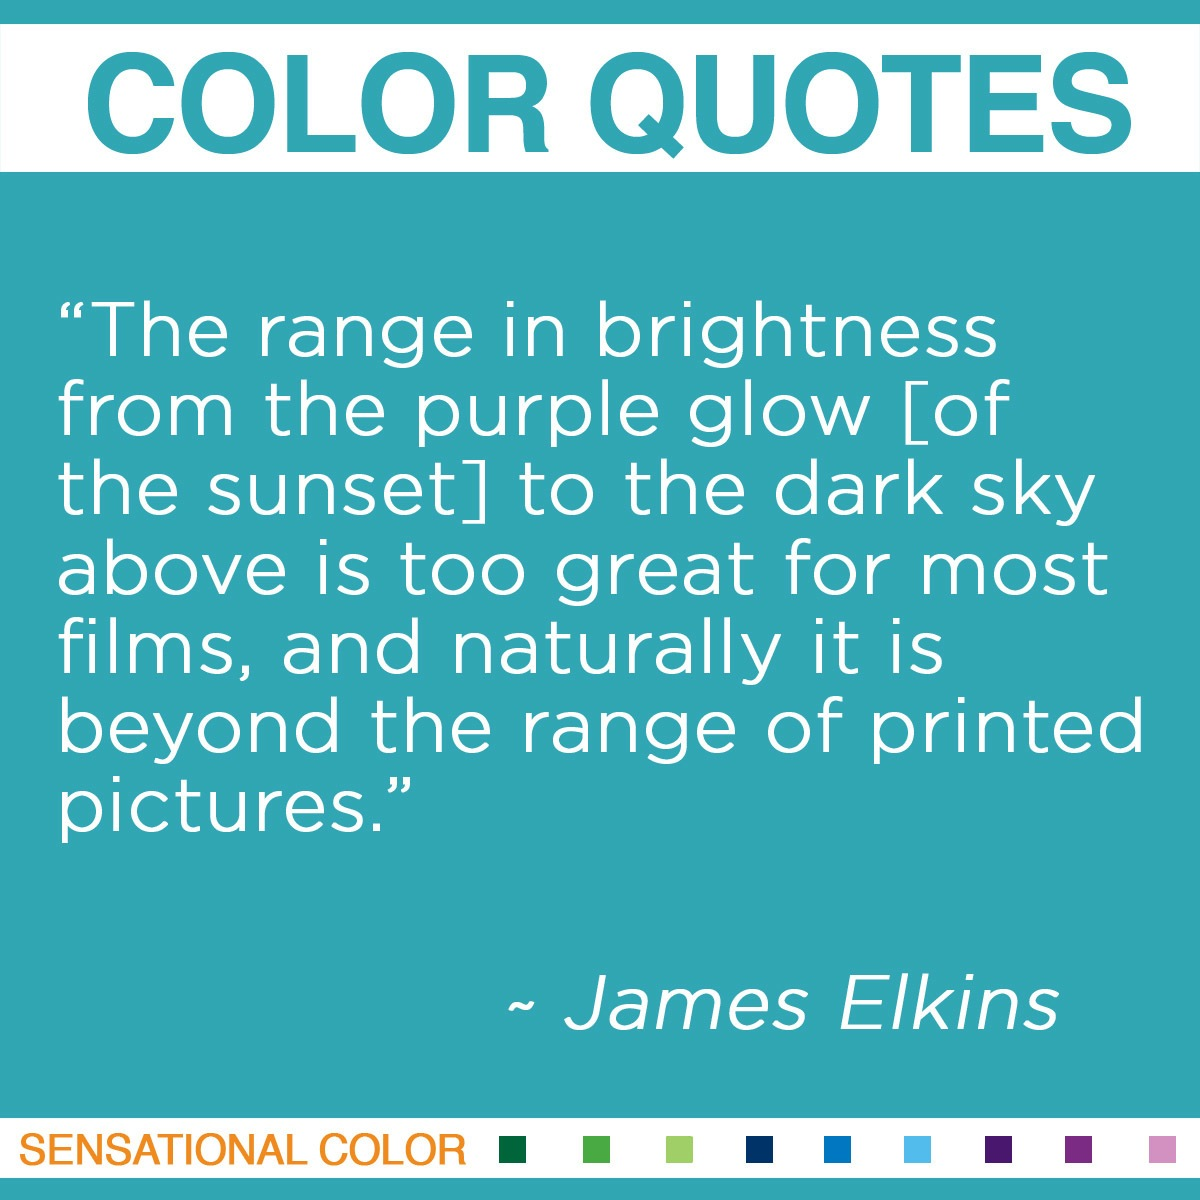 """The range in brightness from the purple glow [of the sunset] to the dark sky above is too great for most films, and naturally it is beyond the range of printed pictures."" - James Elkins"